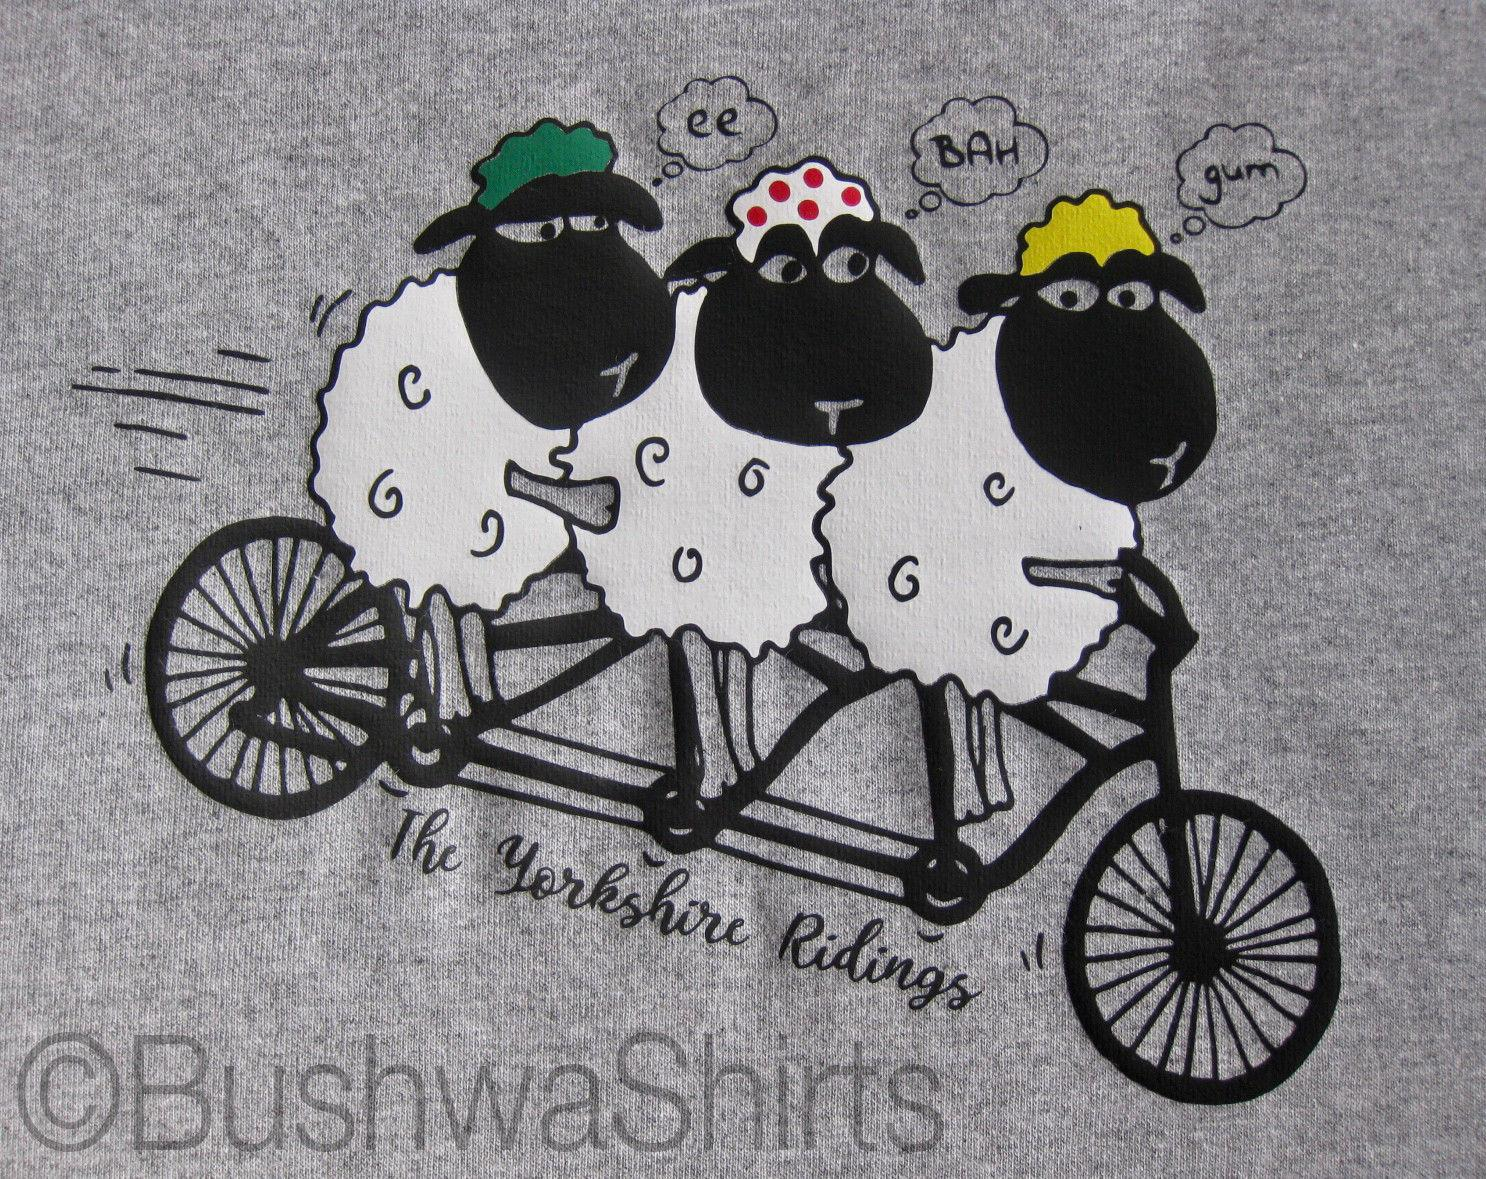 add5c38f8 Le Tour De Yorkshire / Sheep 'ee Bah Gum' Inspired T Shirt Tee Top Mens  Funny Tops Tee New Unisex Funny Free Shipping